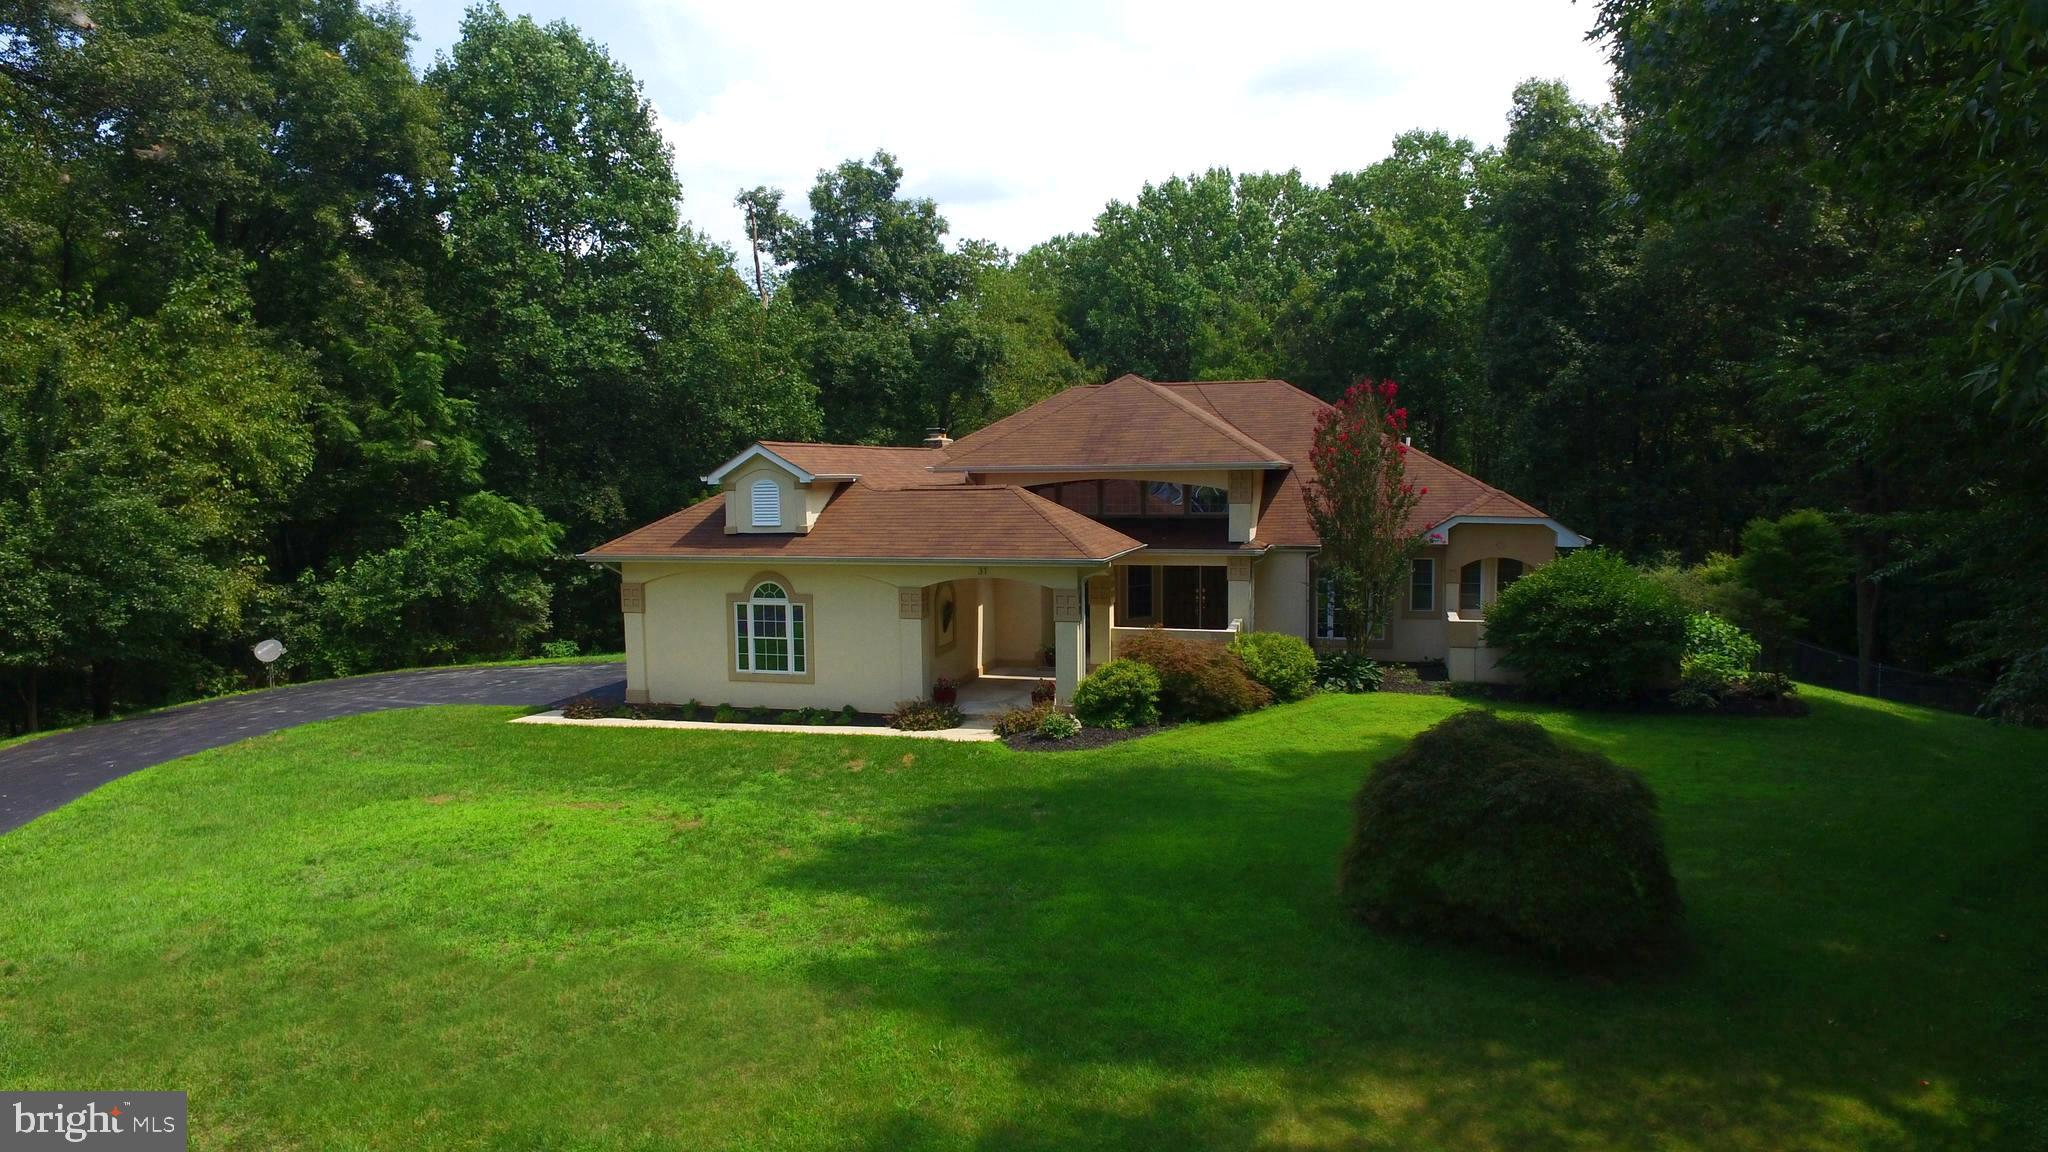 31 TIMBERSHED COURT, FREELAND, MD 21053